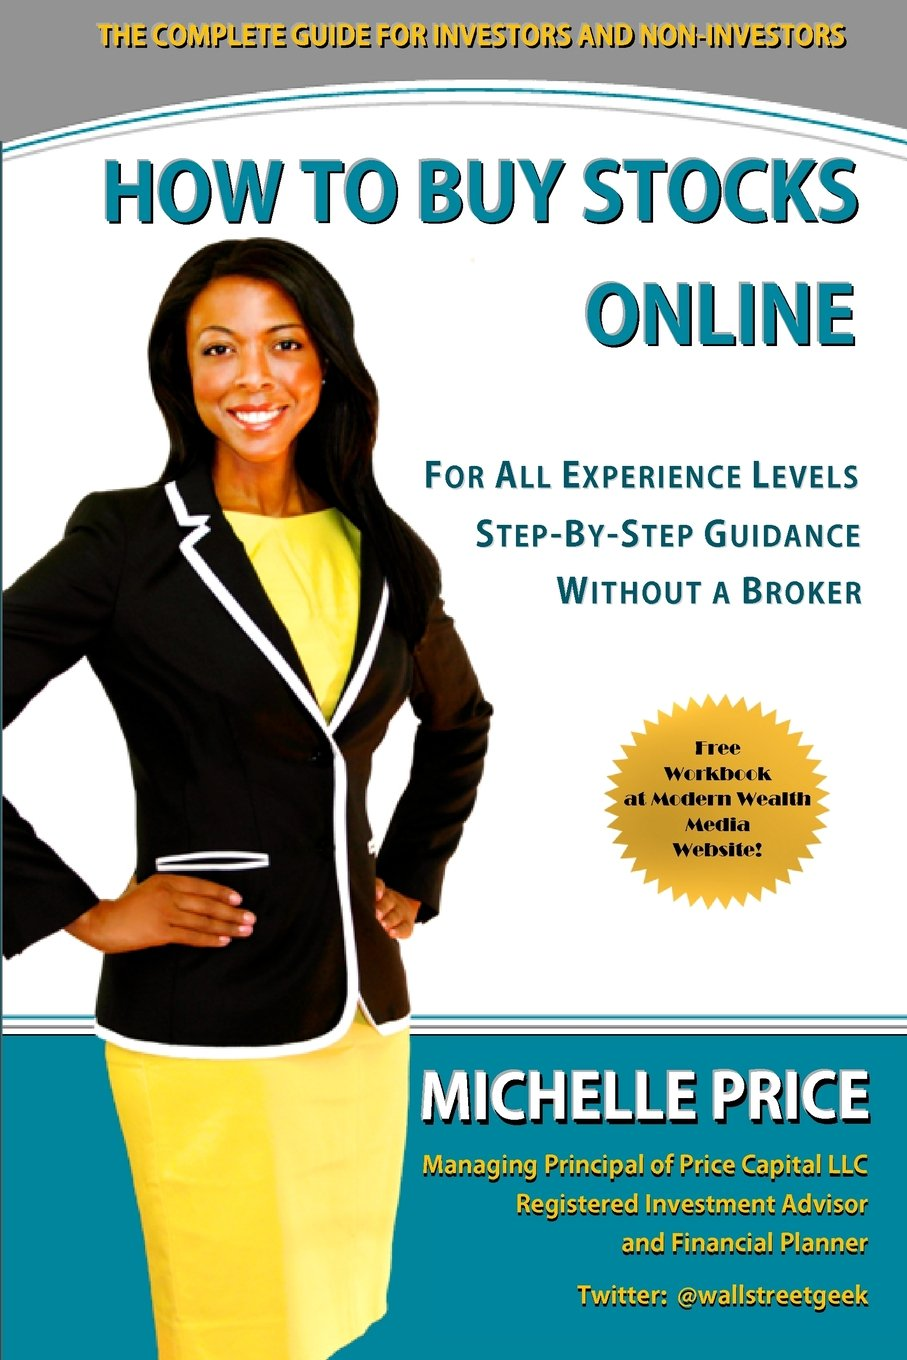 How to buy stocks online for all experience levels step by step how to buy stocks online for all experience levels step by step guidance and without a broker michelle price 9780988267909 amazon books ccuart Gallery